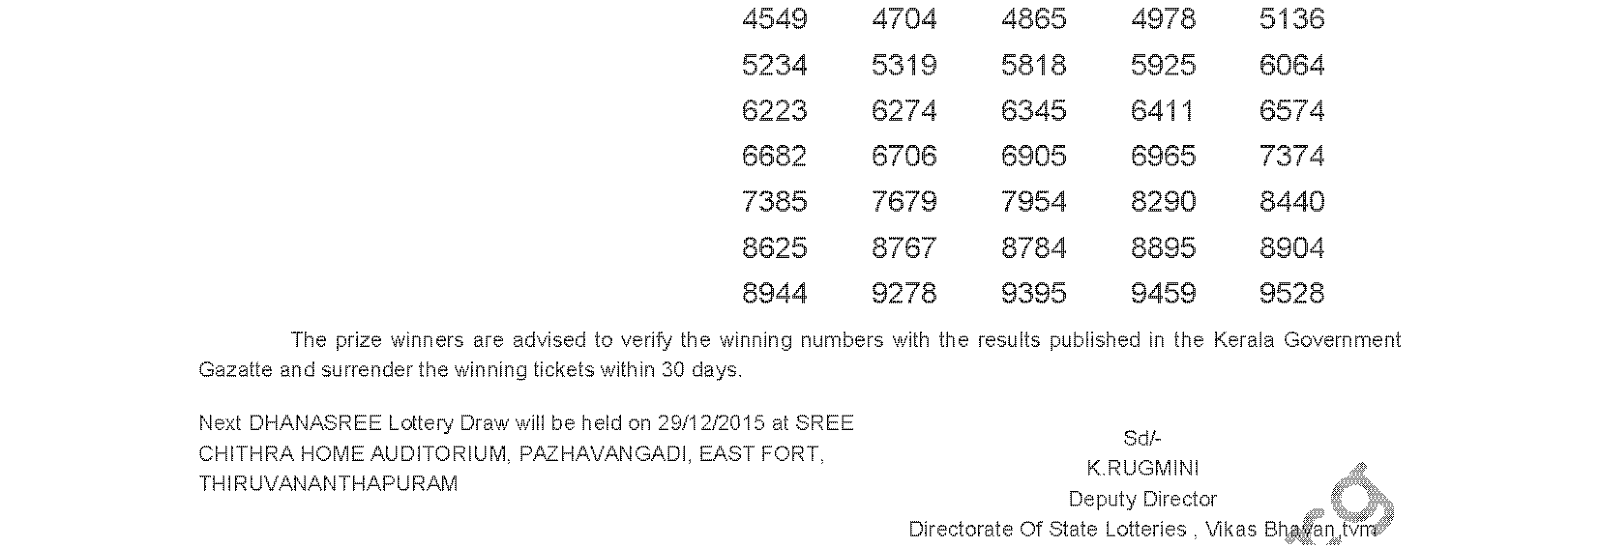 DHANASREE Lottery DS 217 Result 22-12-2015